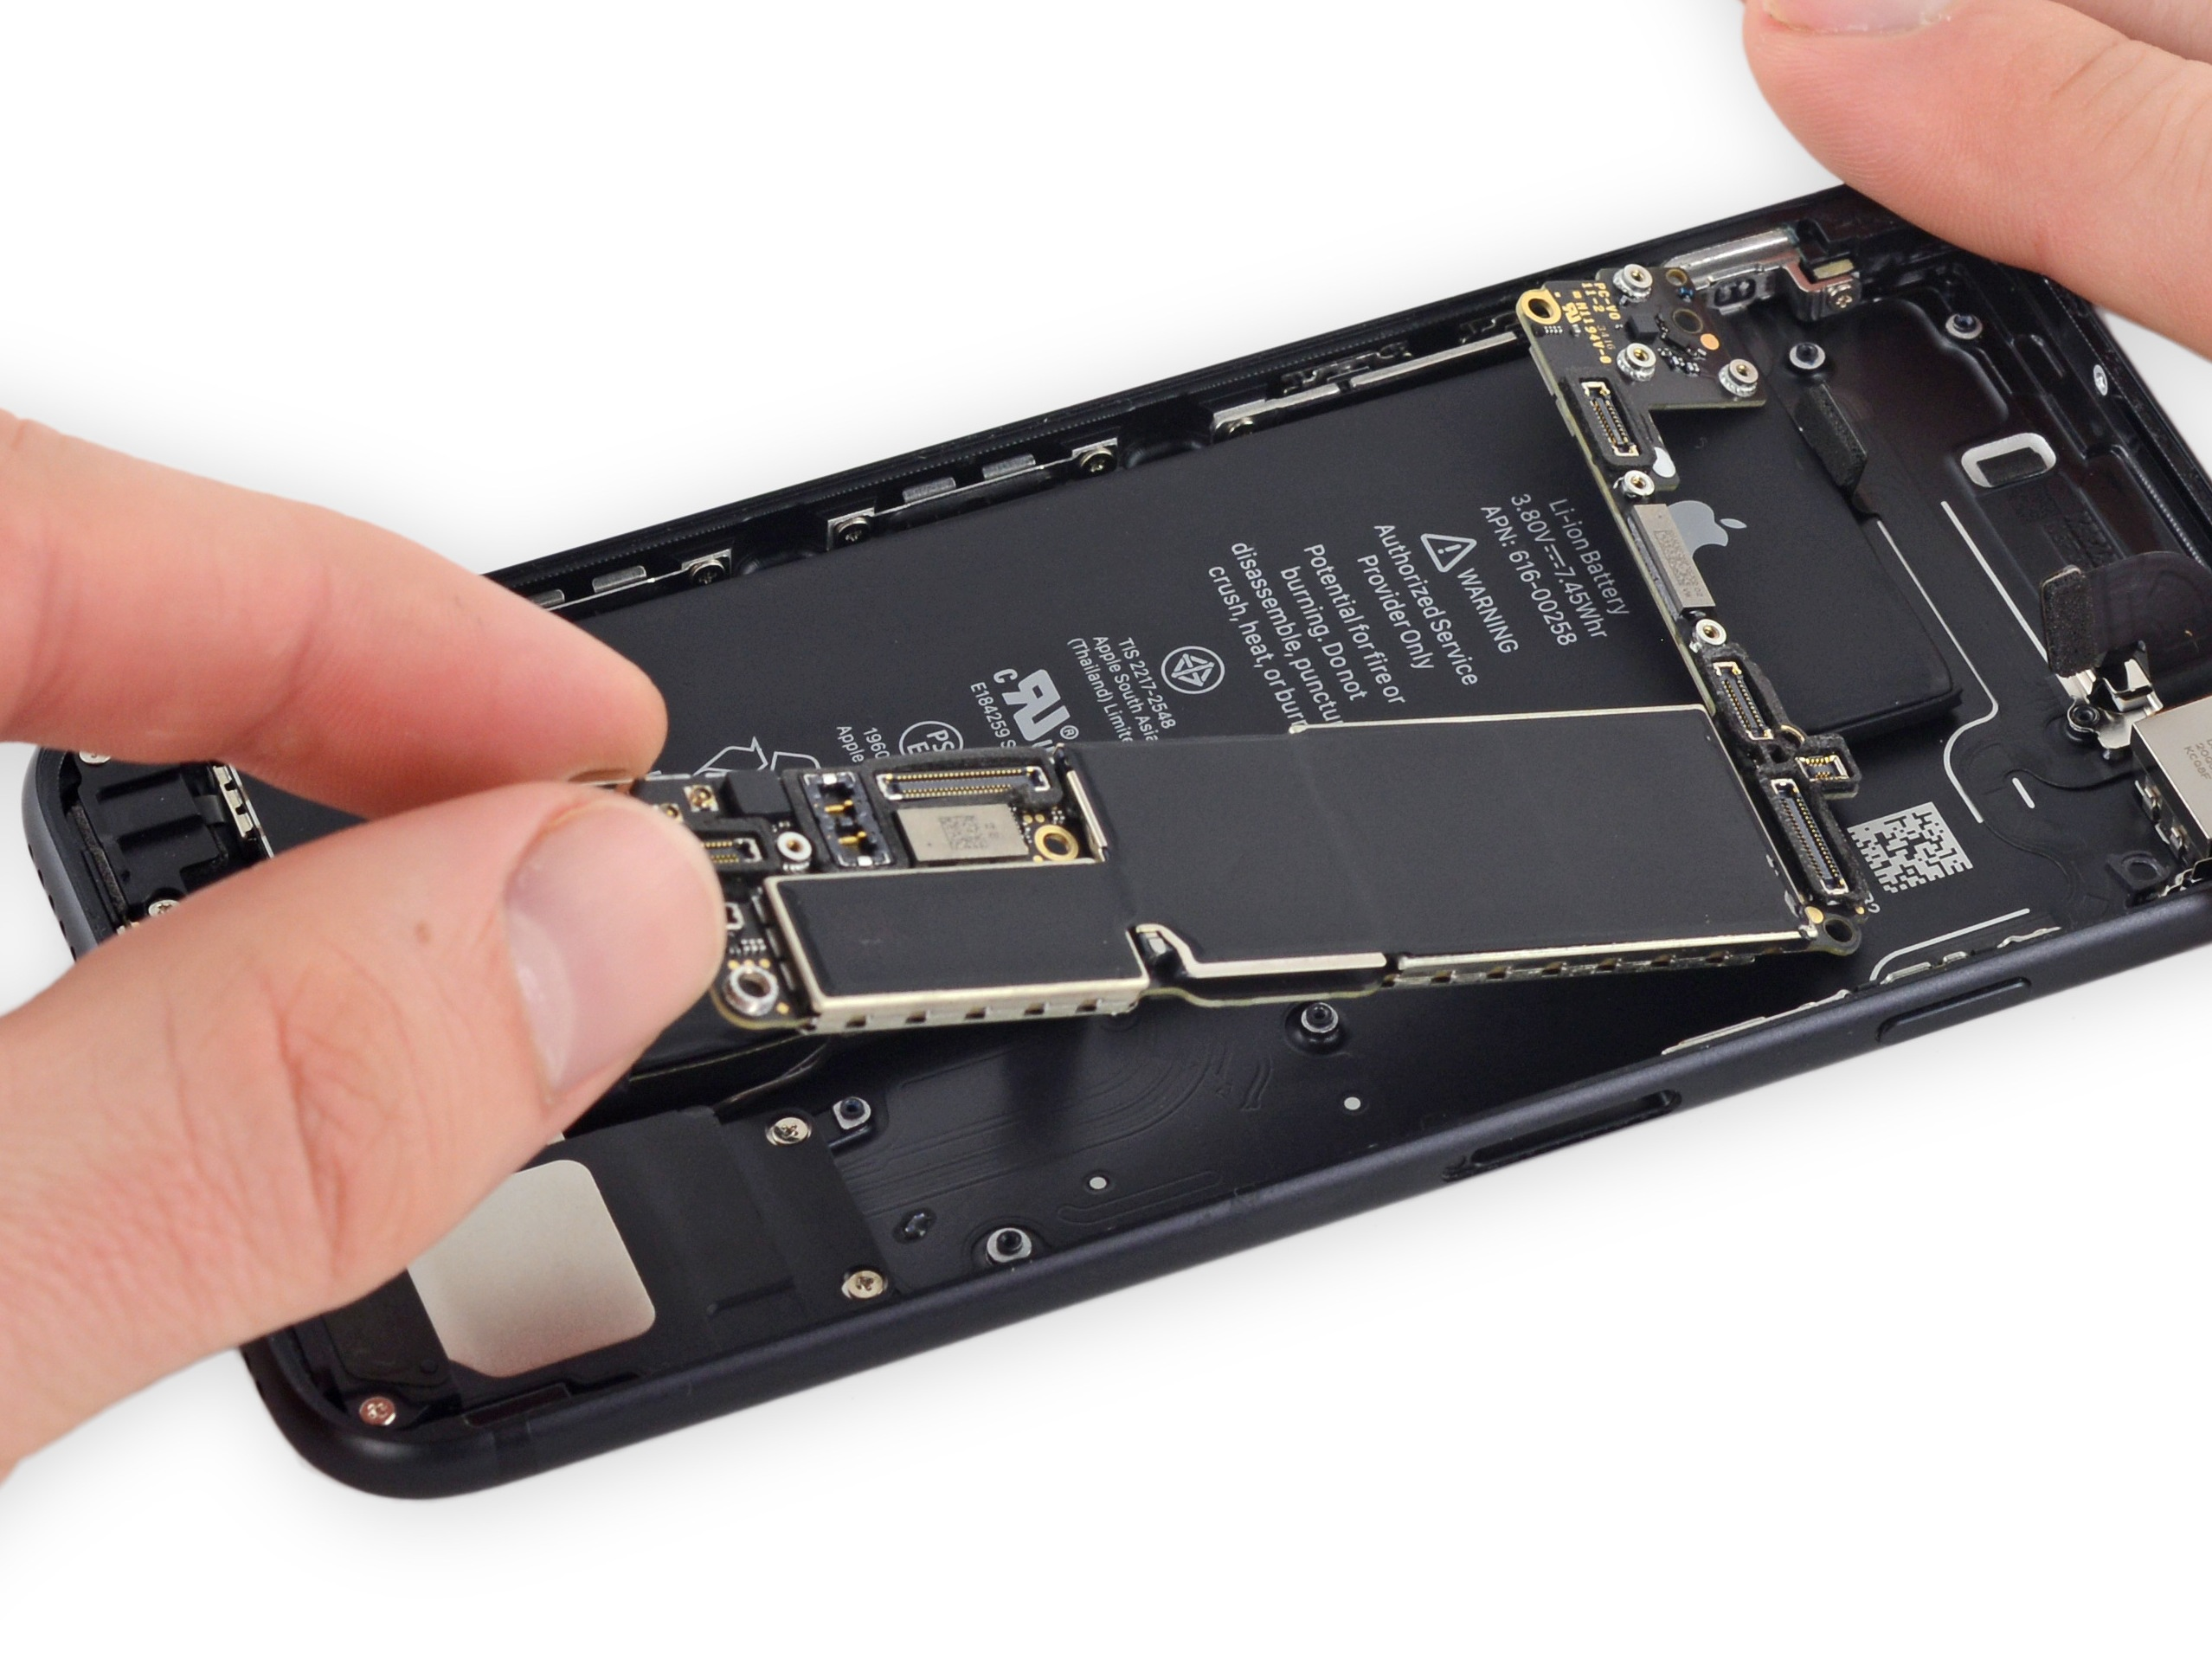 Iphone 7 Logic Board Replacement Ifixit Repair Guide Power Switch Is Pressed Digital Book Cricket Will Be Displayed